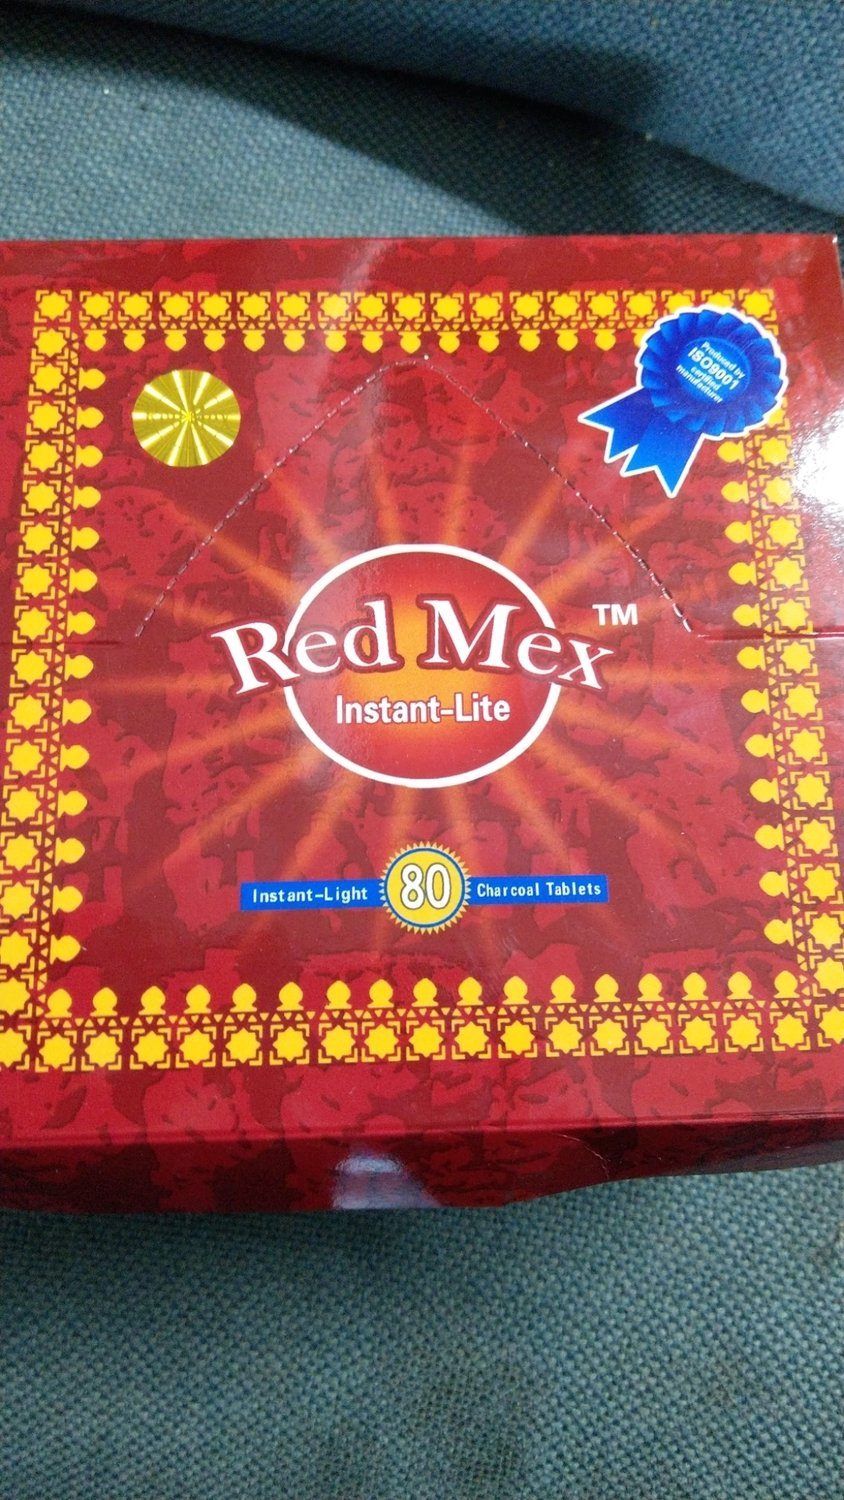 RED MEX Quick Lighting Charcoal